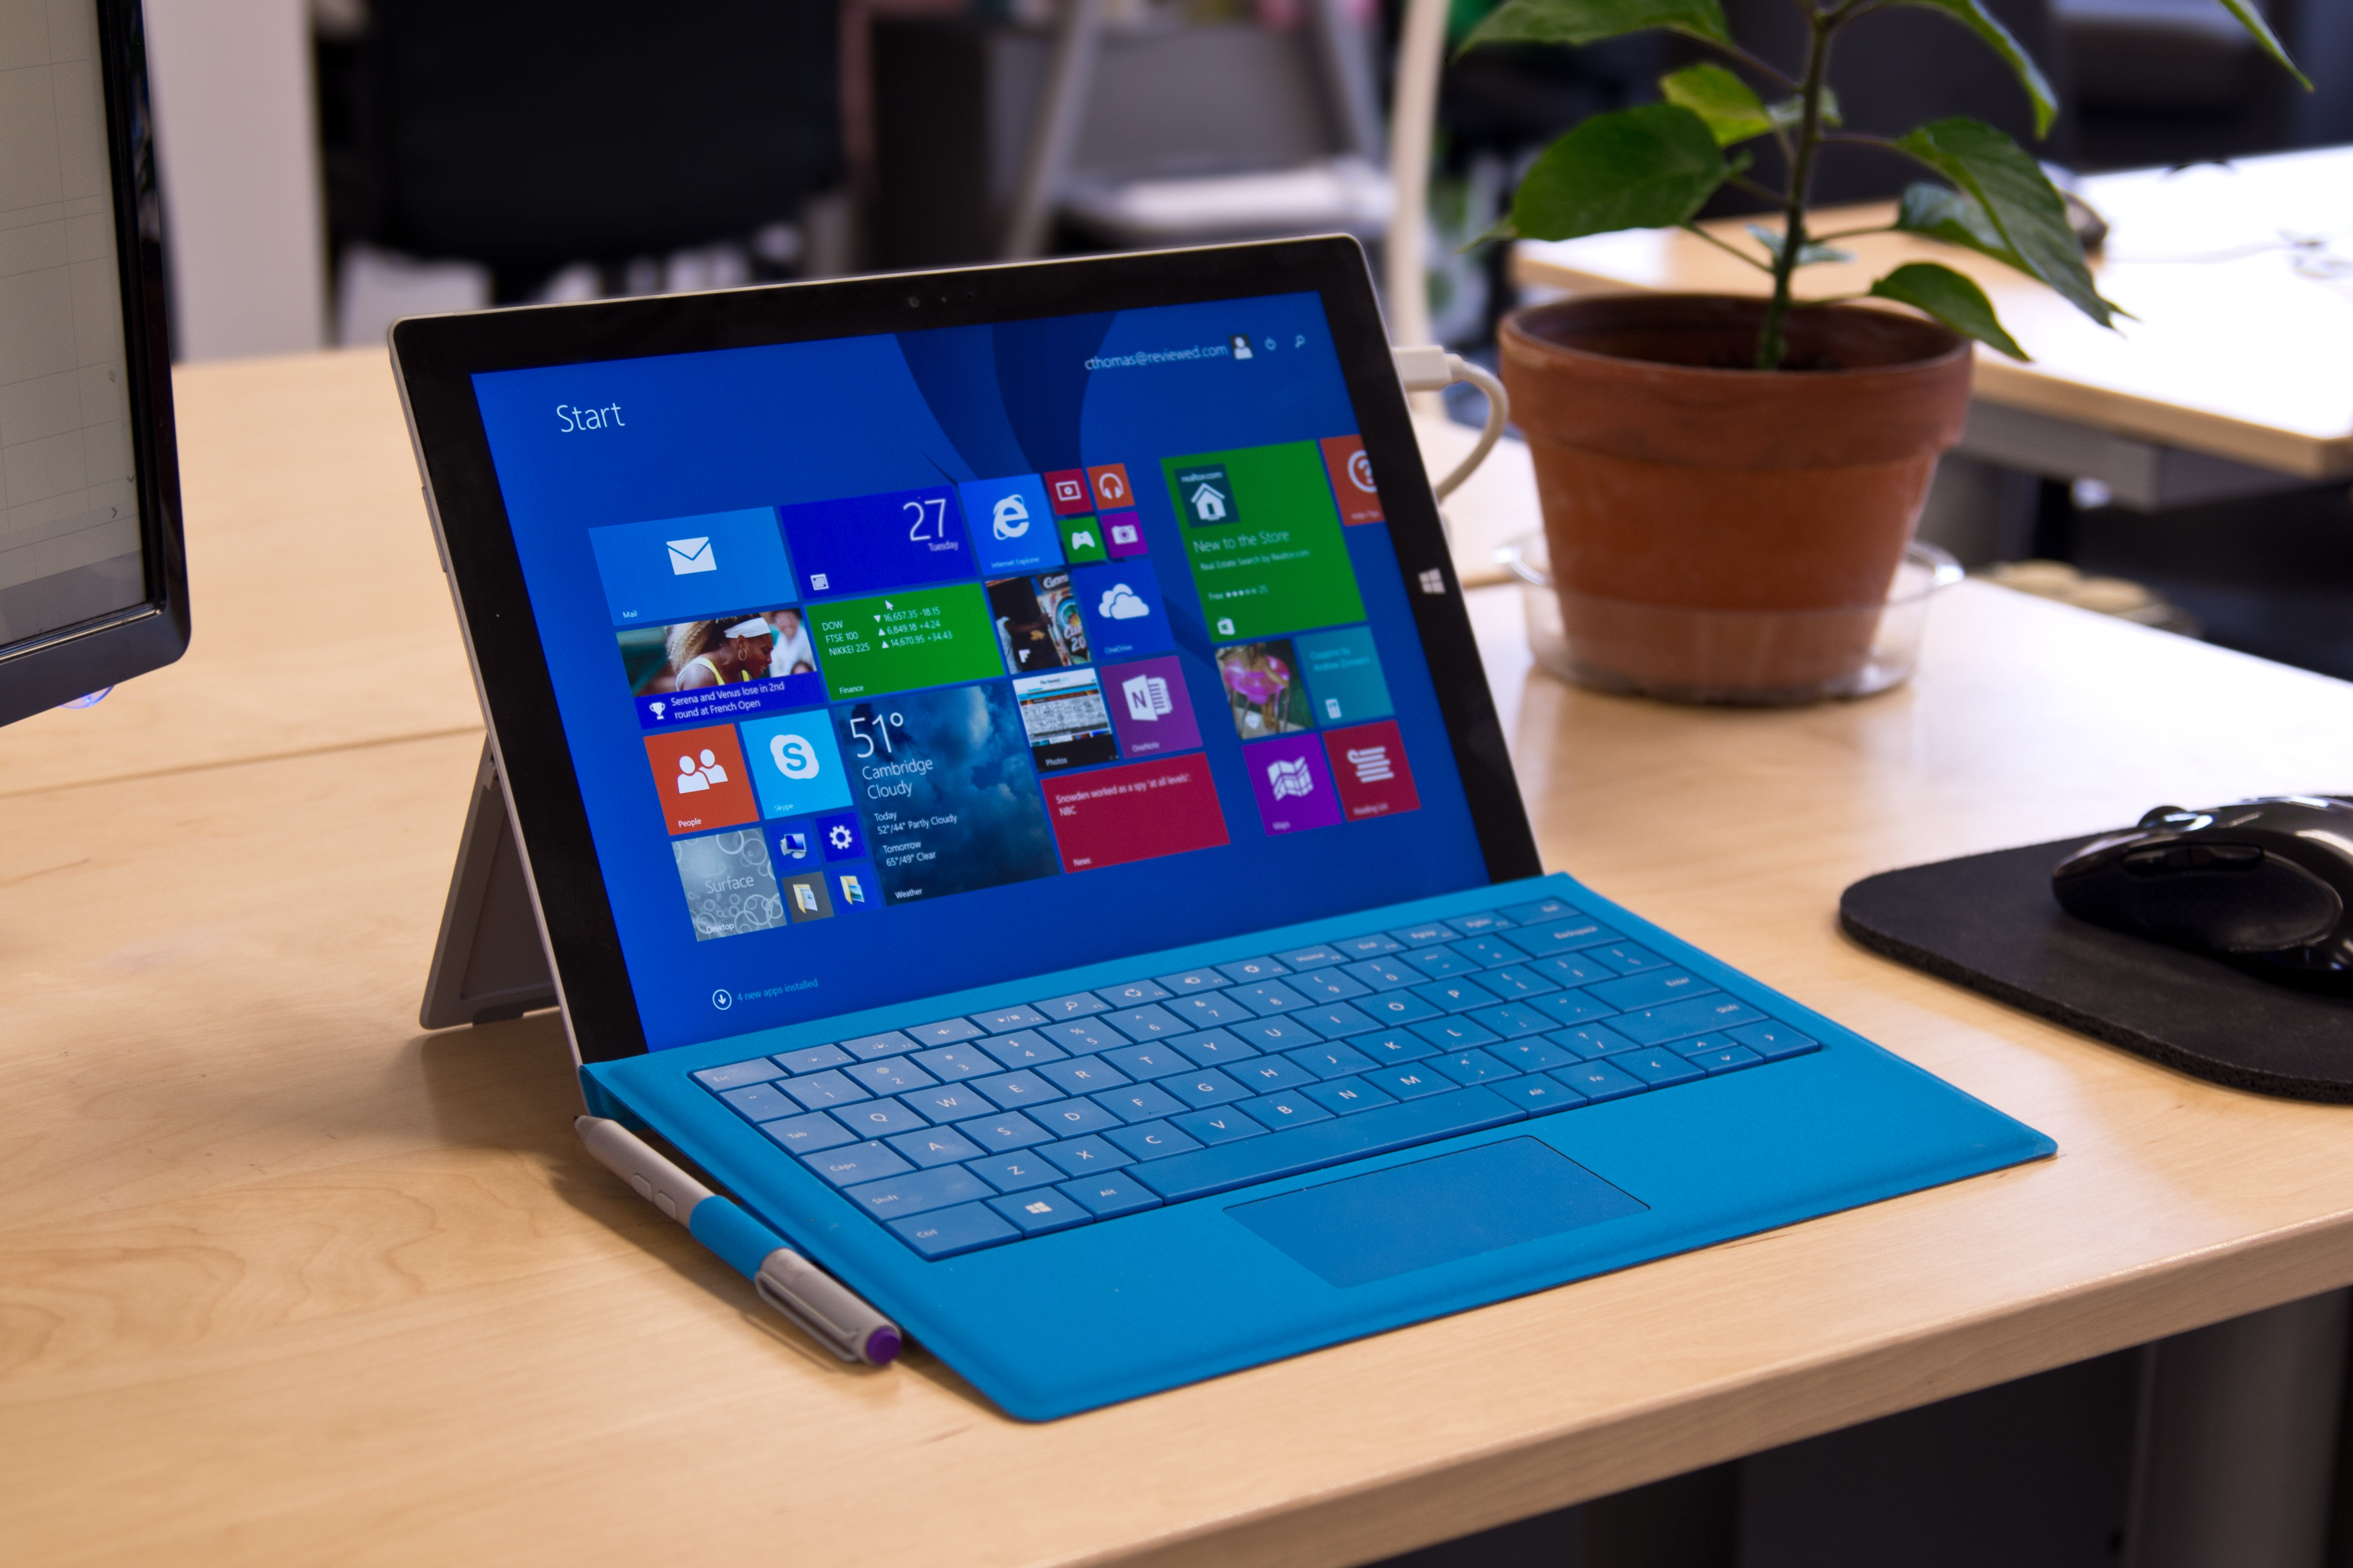 A closer look at the Microsoft Surface Pro 3's on a desk.